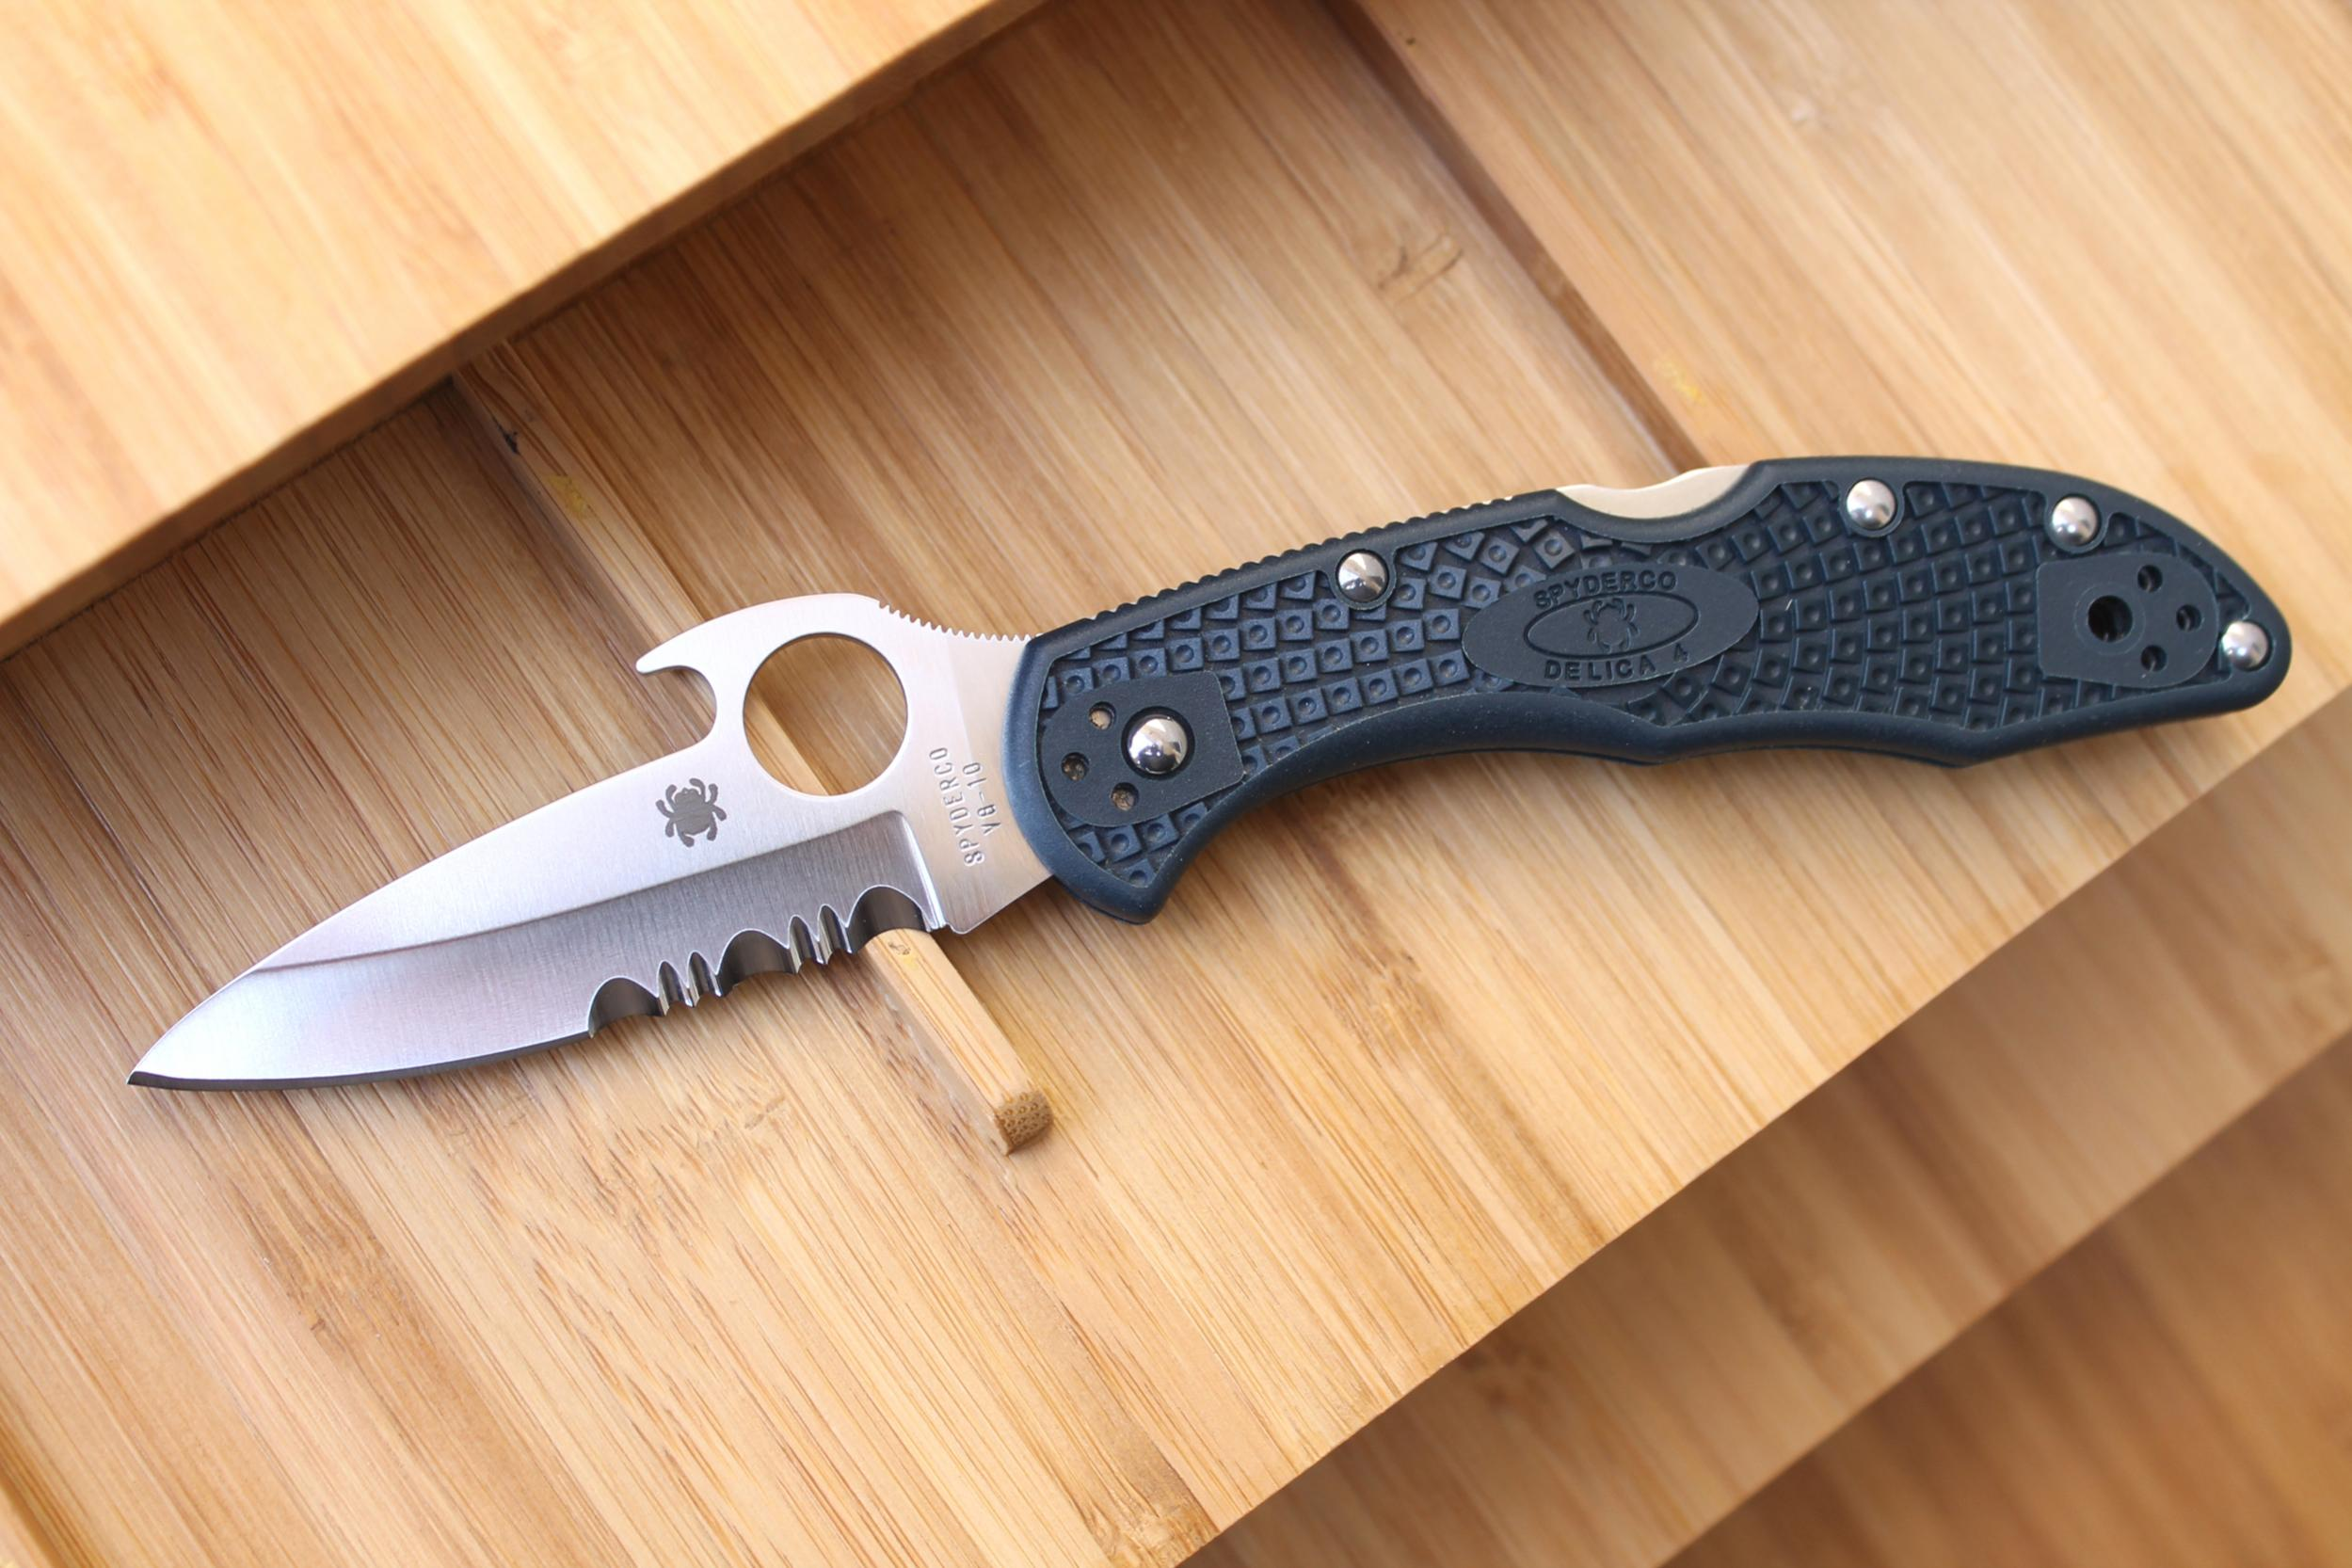 A Look at Spyderco's Delica/Endura4 and Emerson Opener-img_1881.jpg